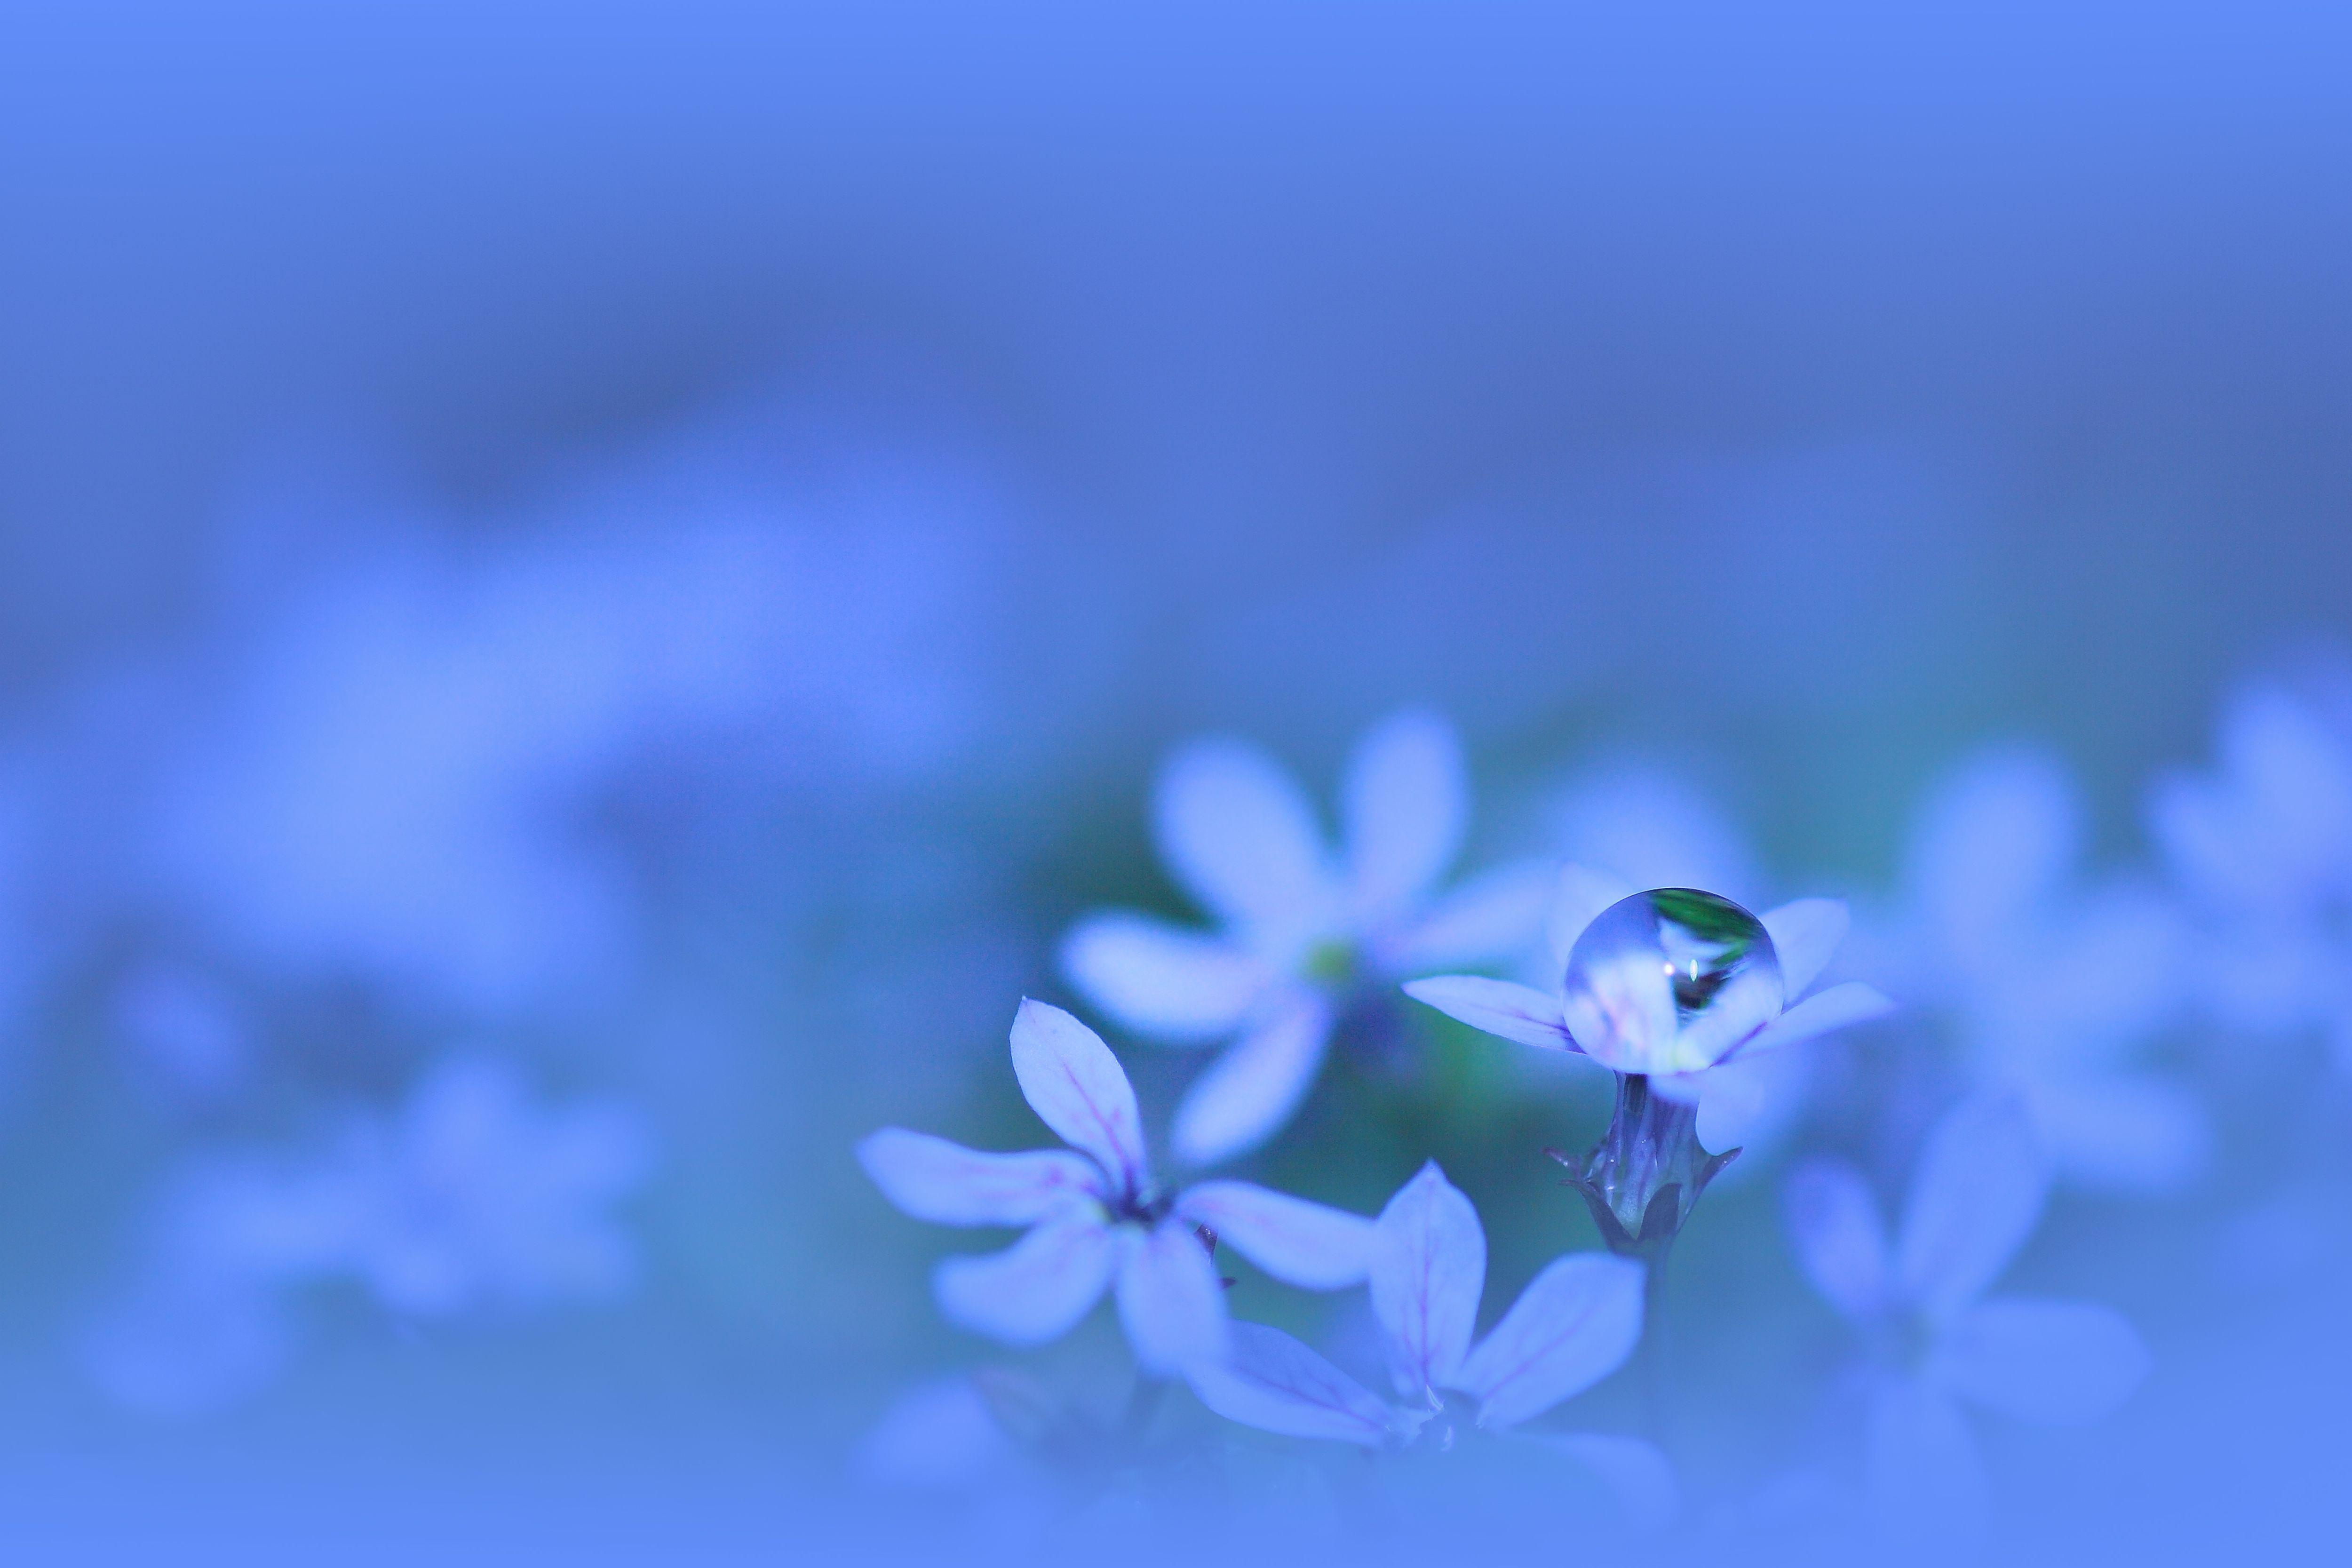 Blue Flowers with Water Drop | Macro Photo and Wallpaper